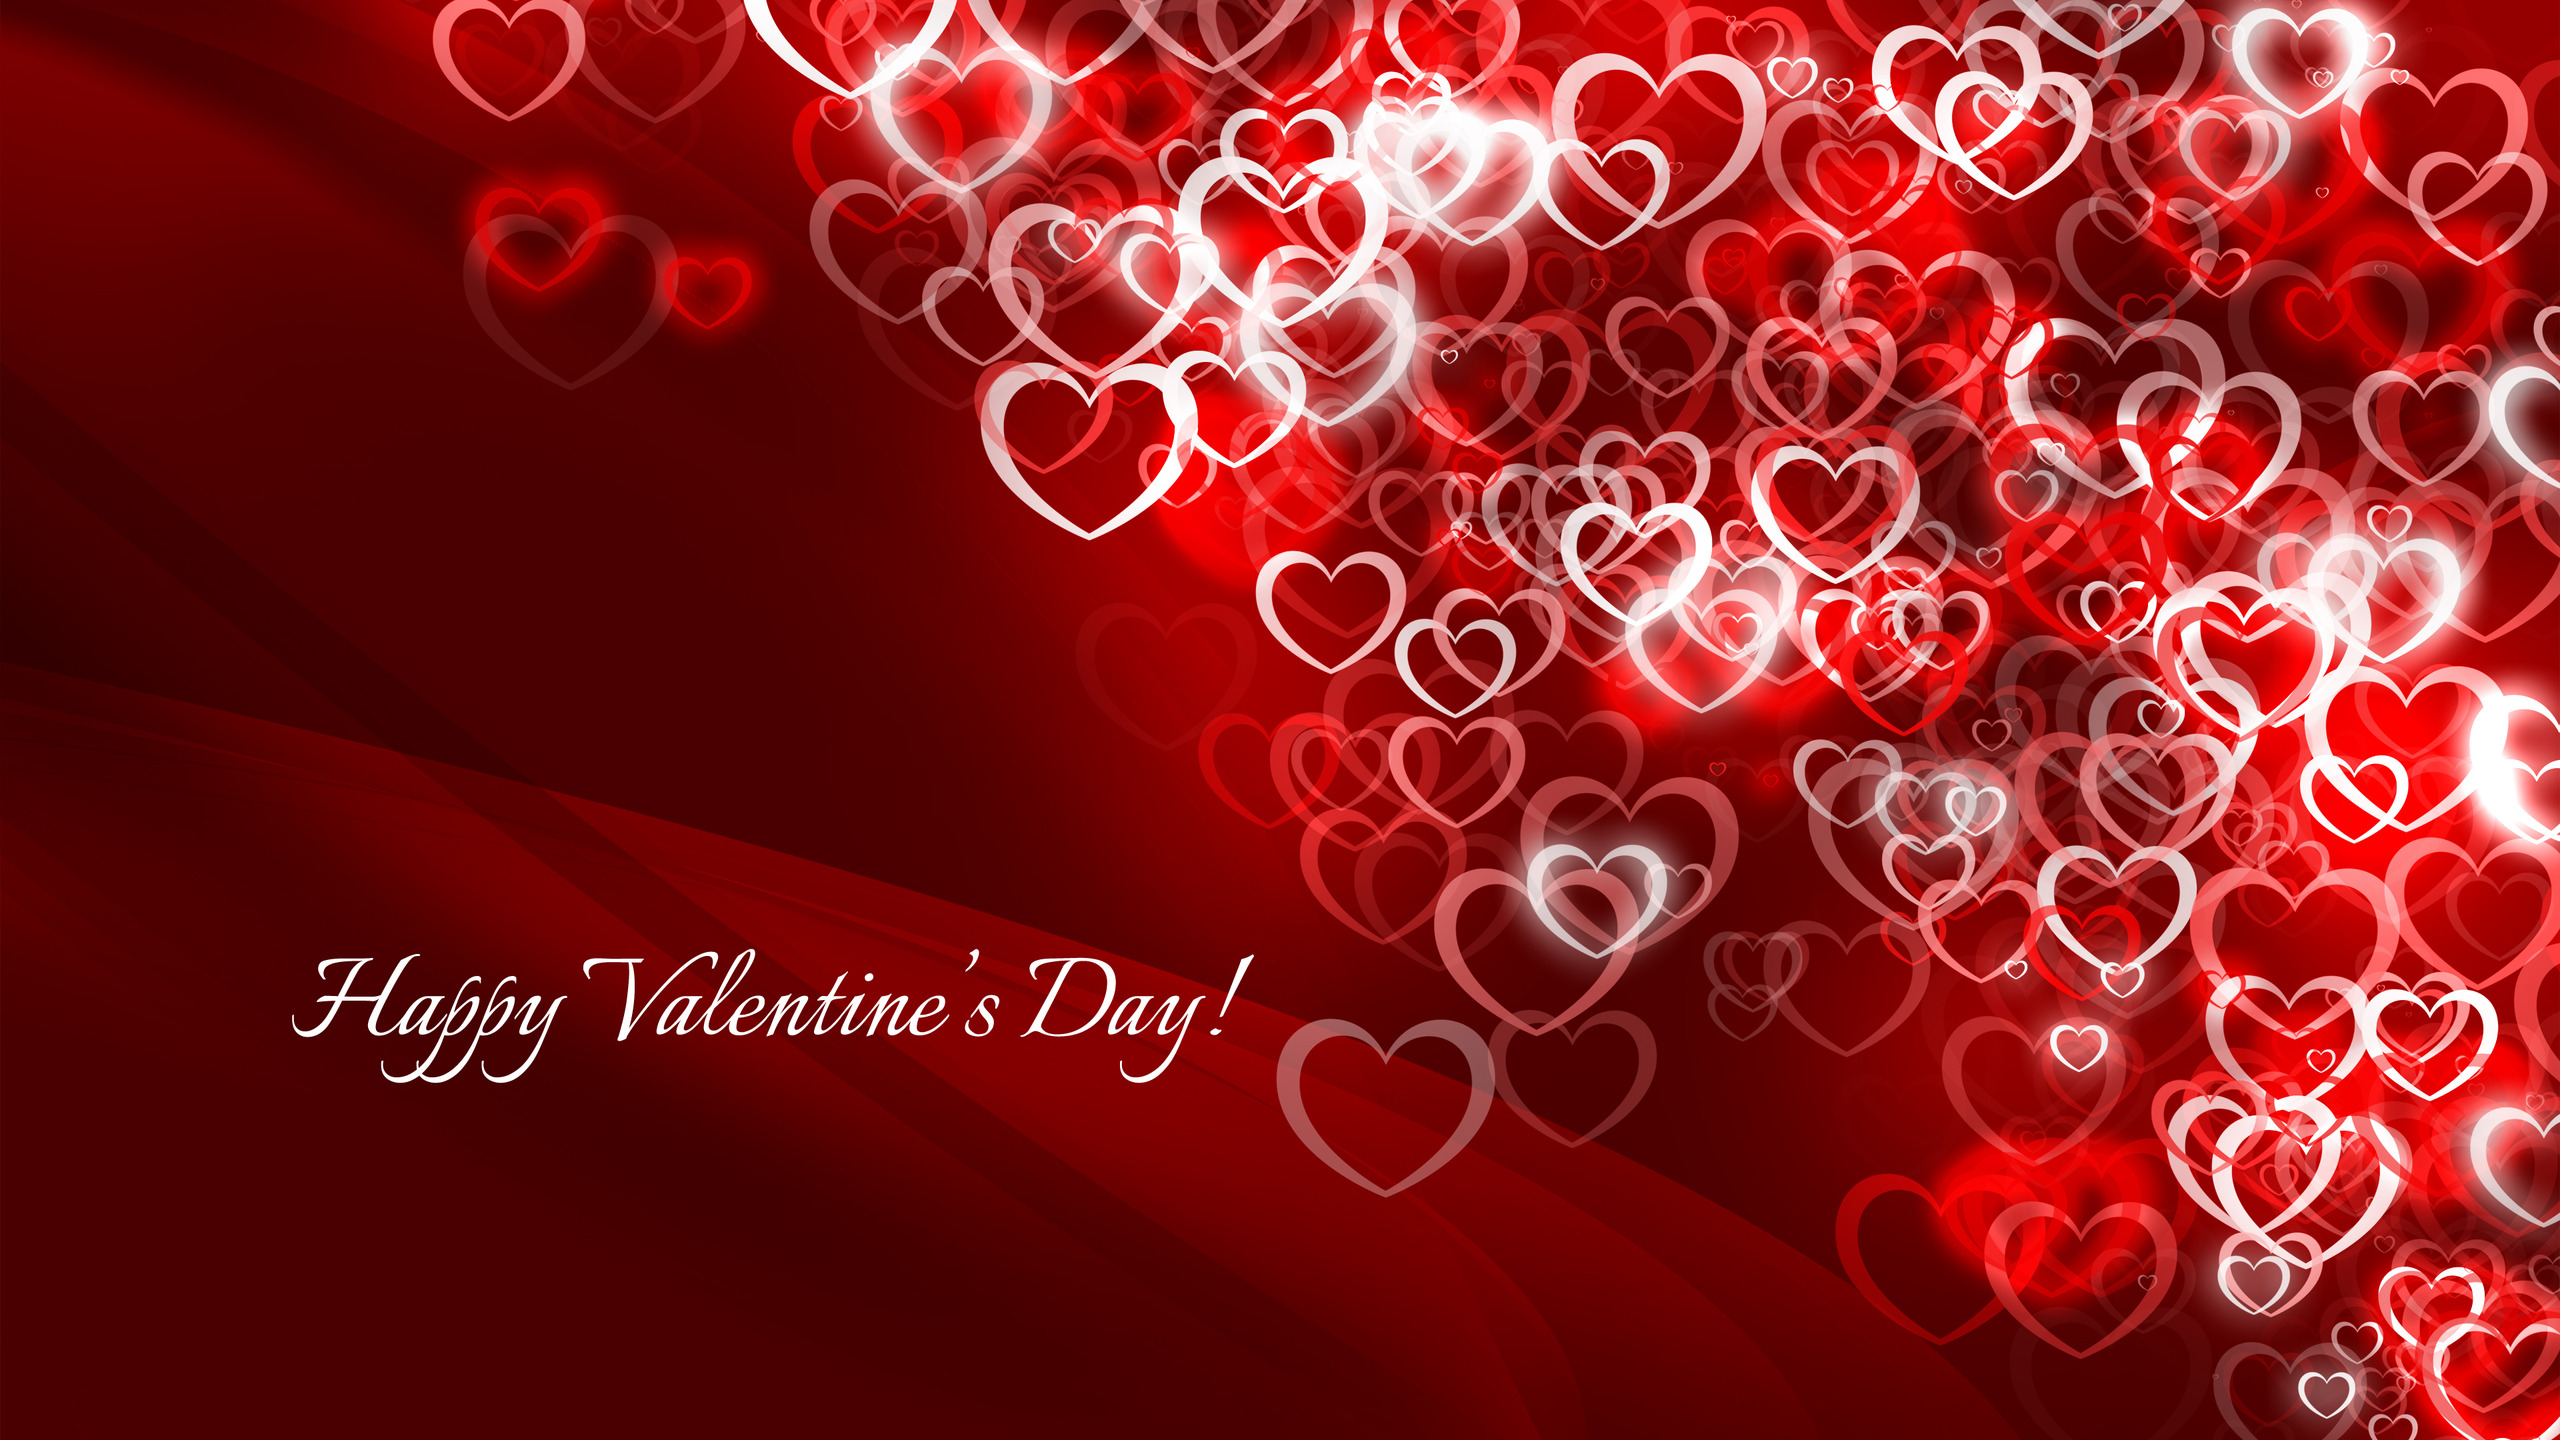 happy valentines day hearts hd wallpaper free dekstop - Happy Valentines Day Pictures Free